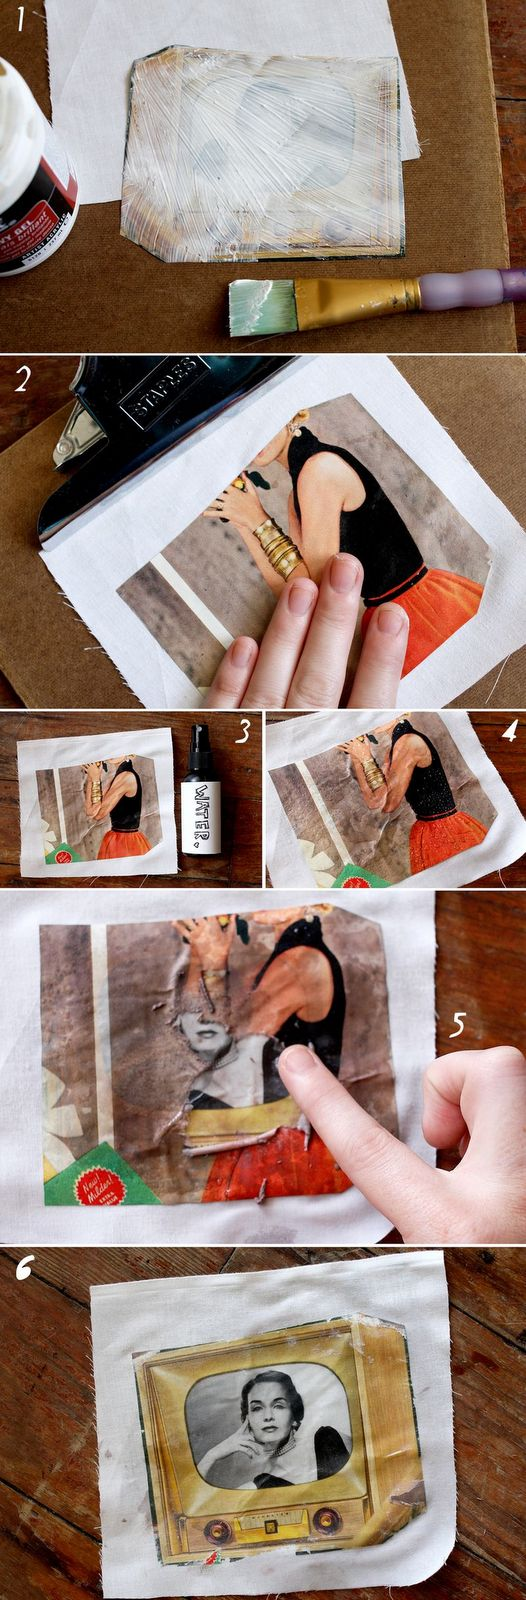 How to transfer photo to fabric